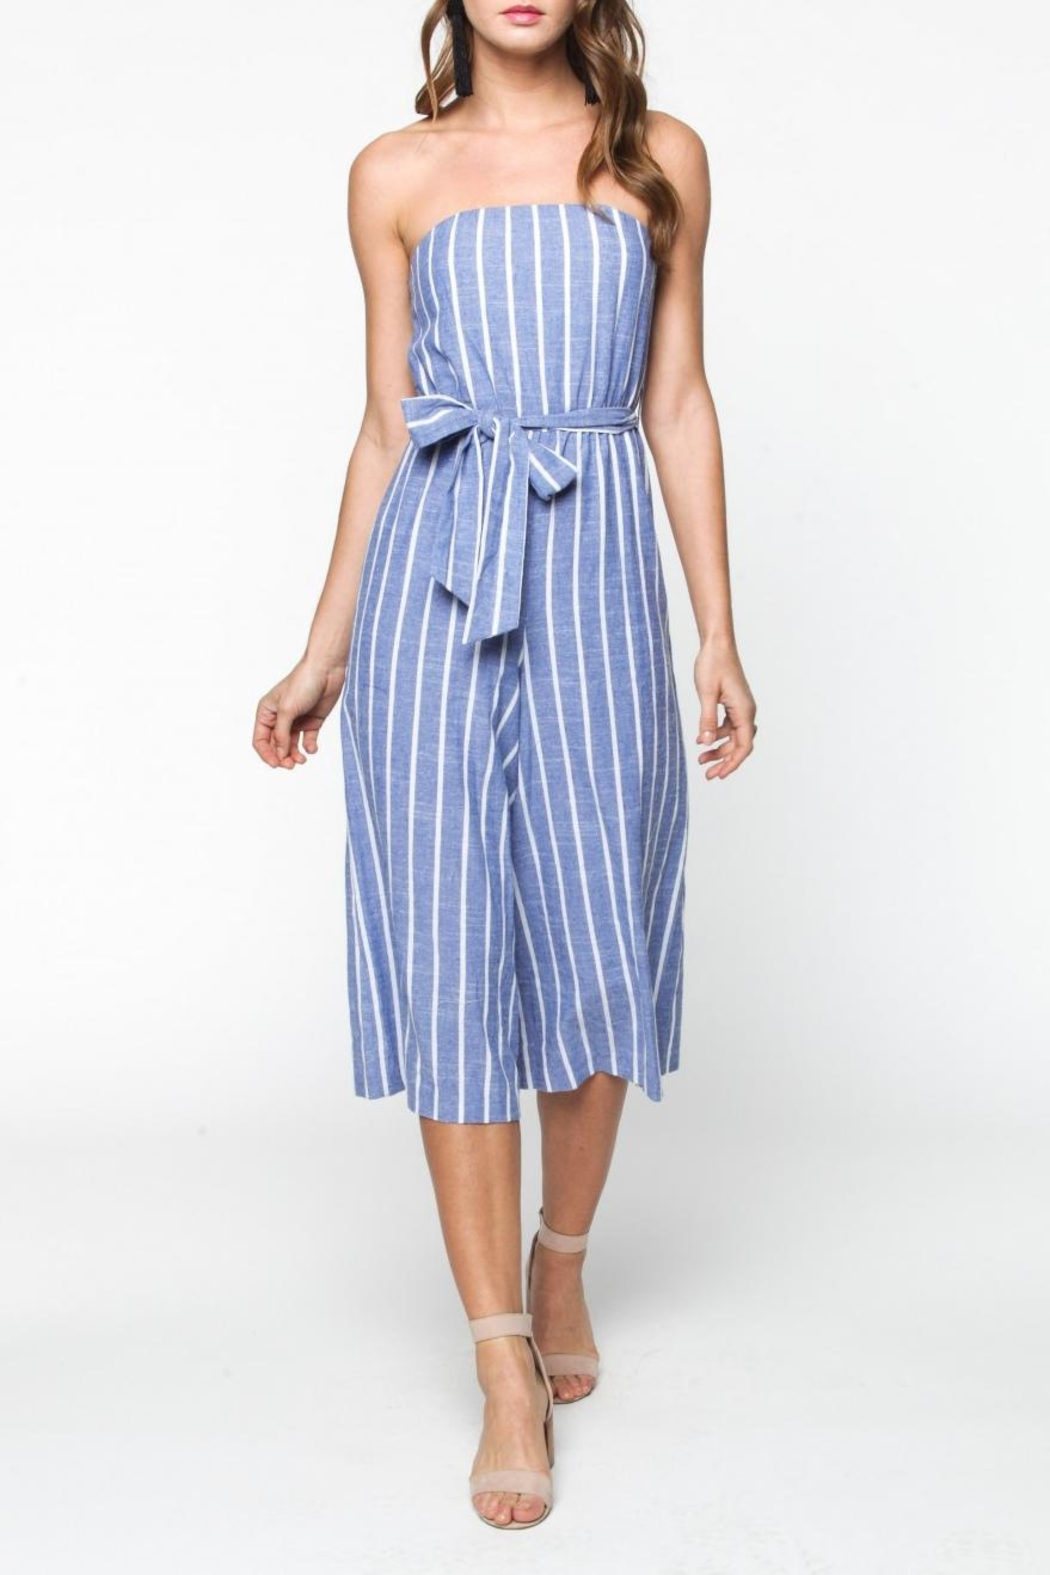 2b83606626b9 Everly Strapless Striped Jumpsuit from Virginia by mod soul — Shoptiques